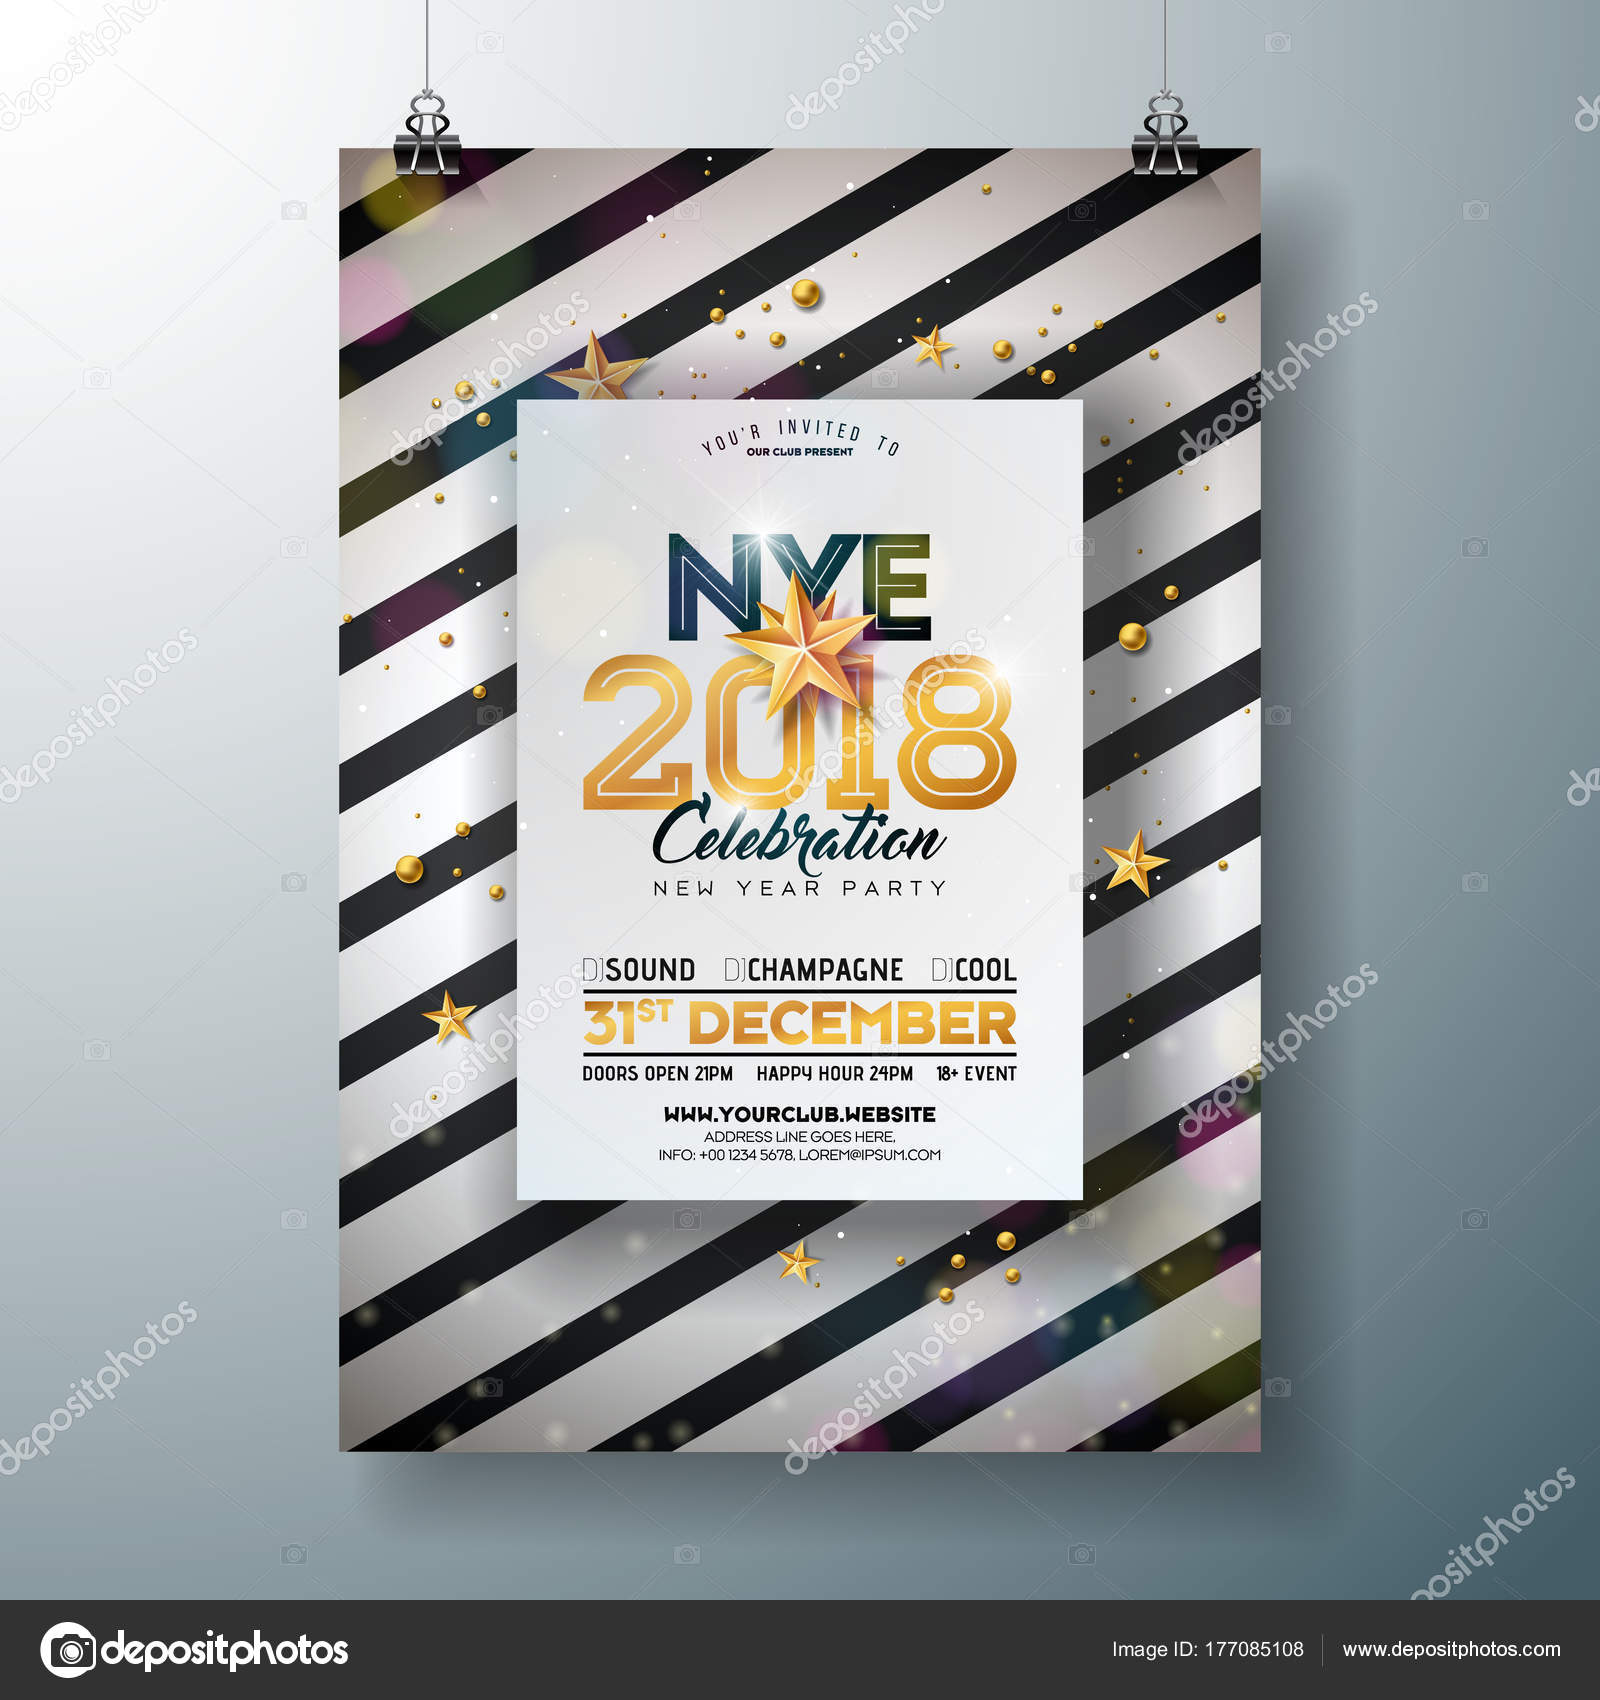 2018 New Year Party Celebration Poster Template Illustration With Shiny  Gold Number On Abstract Black And White Background.